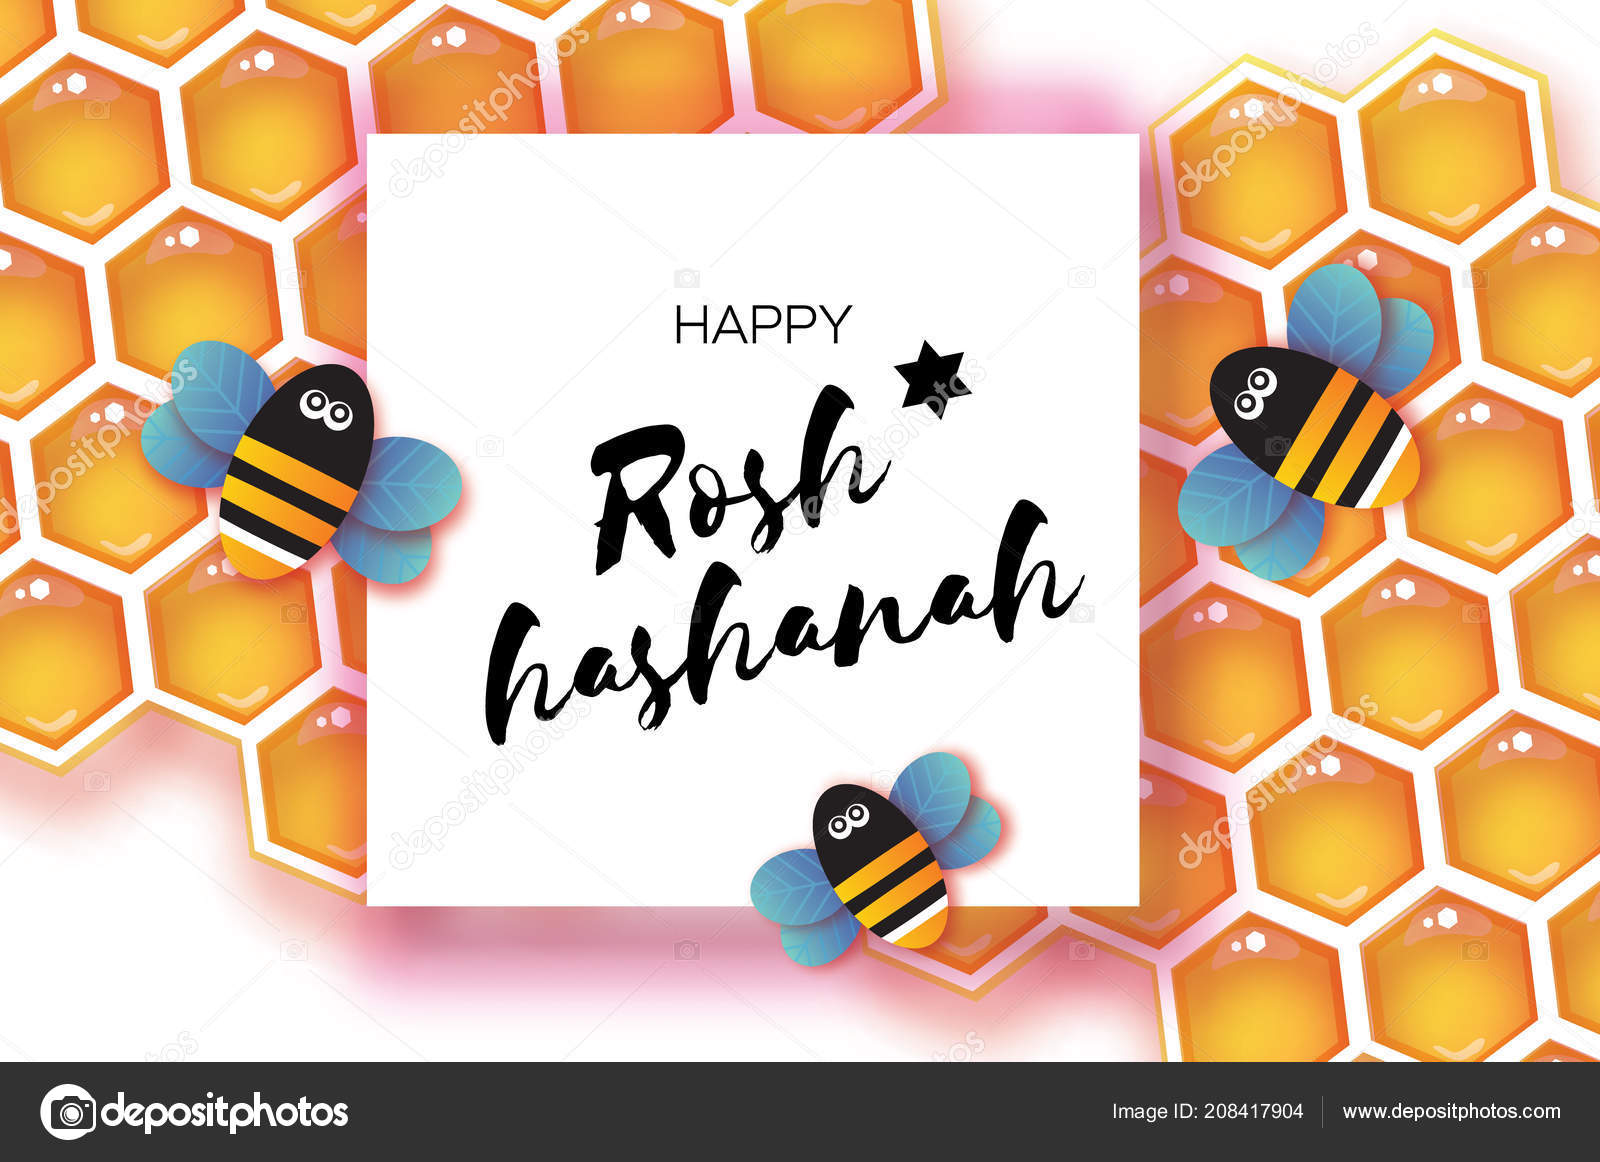 Origami Honey Gold Cell And Bee In Paper Cut Style Happy Holiday Hebrew Square Frame For Text White Background Vector By Mash3r